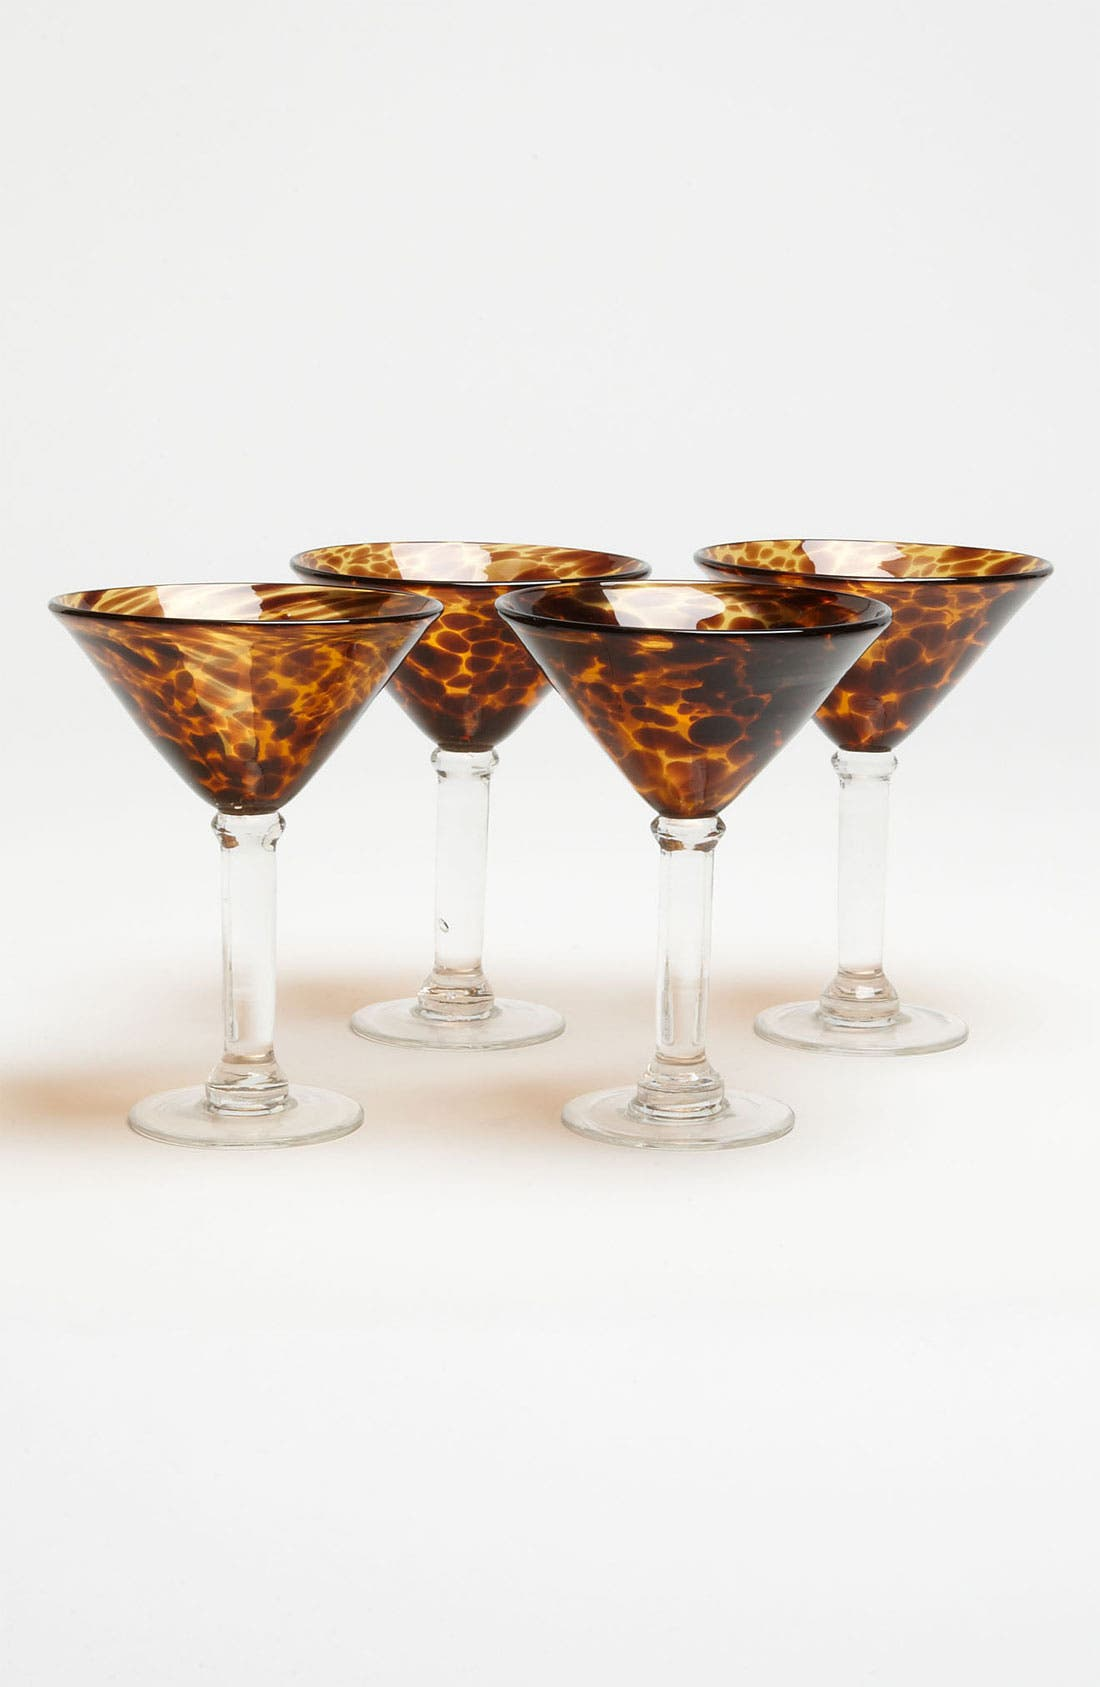 Main Image - Tortoiseshell Martini Glasses (Set of 4)